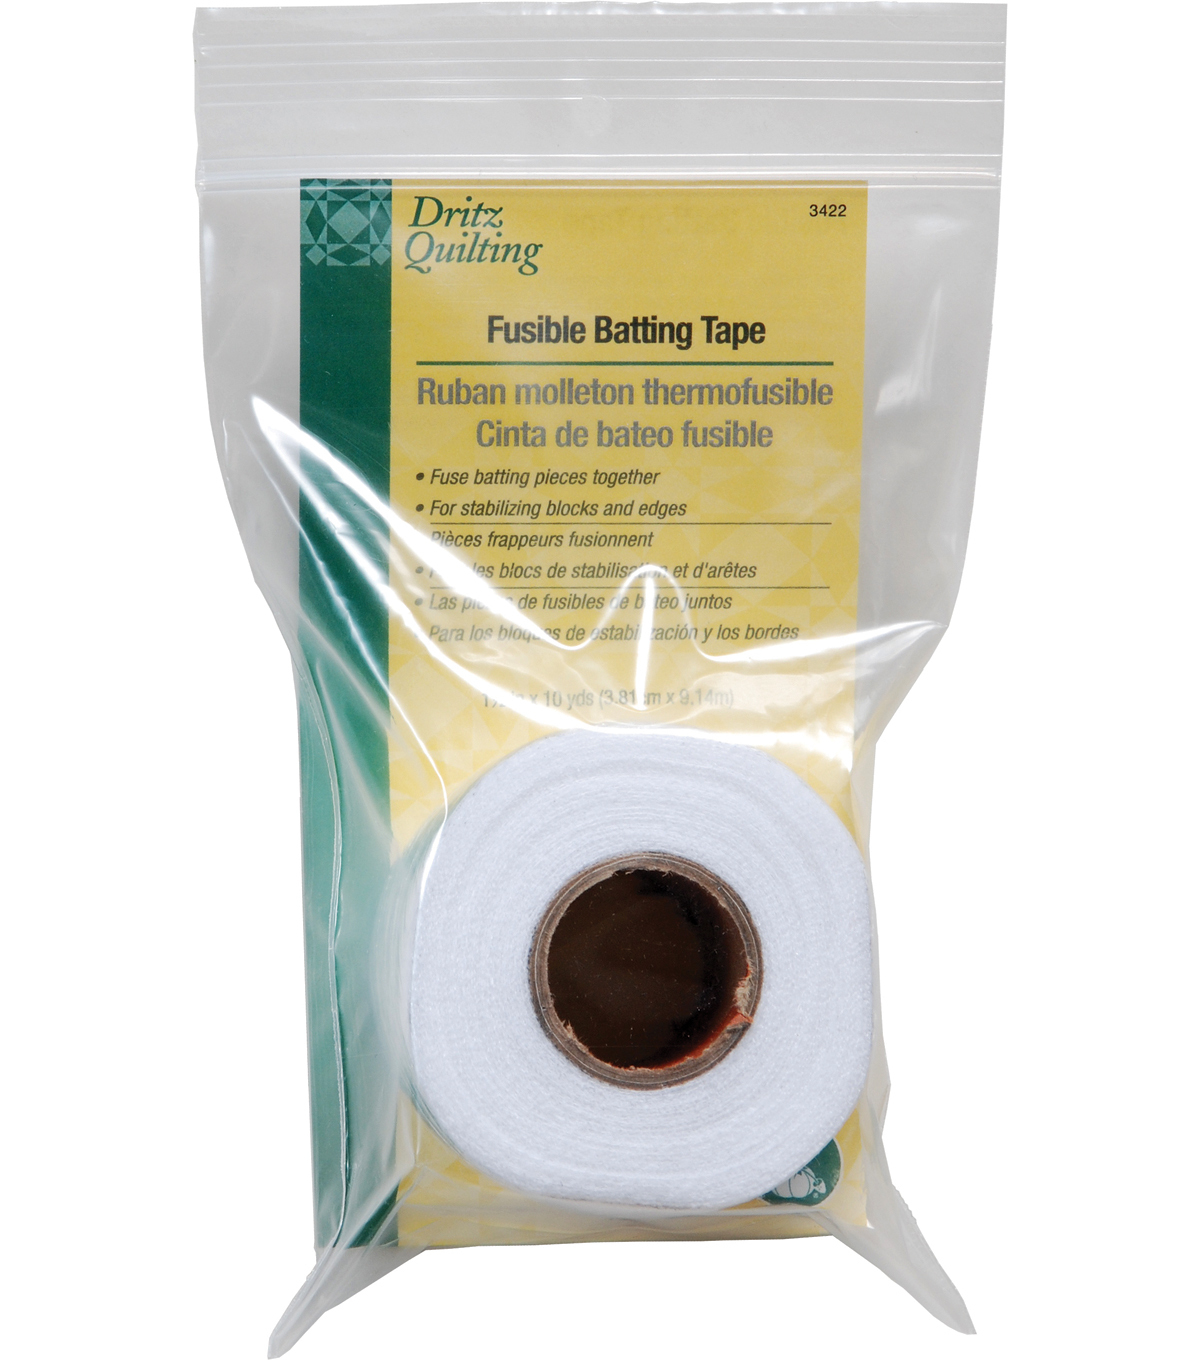 Dritz Quilting 1.5\u0022x10 Yds Fusible Batting Tape